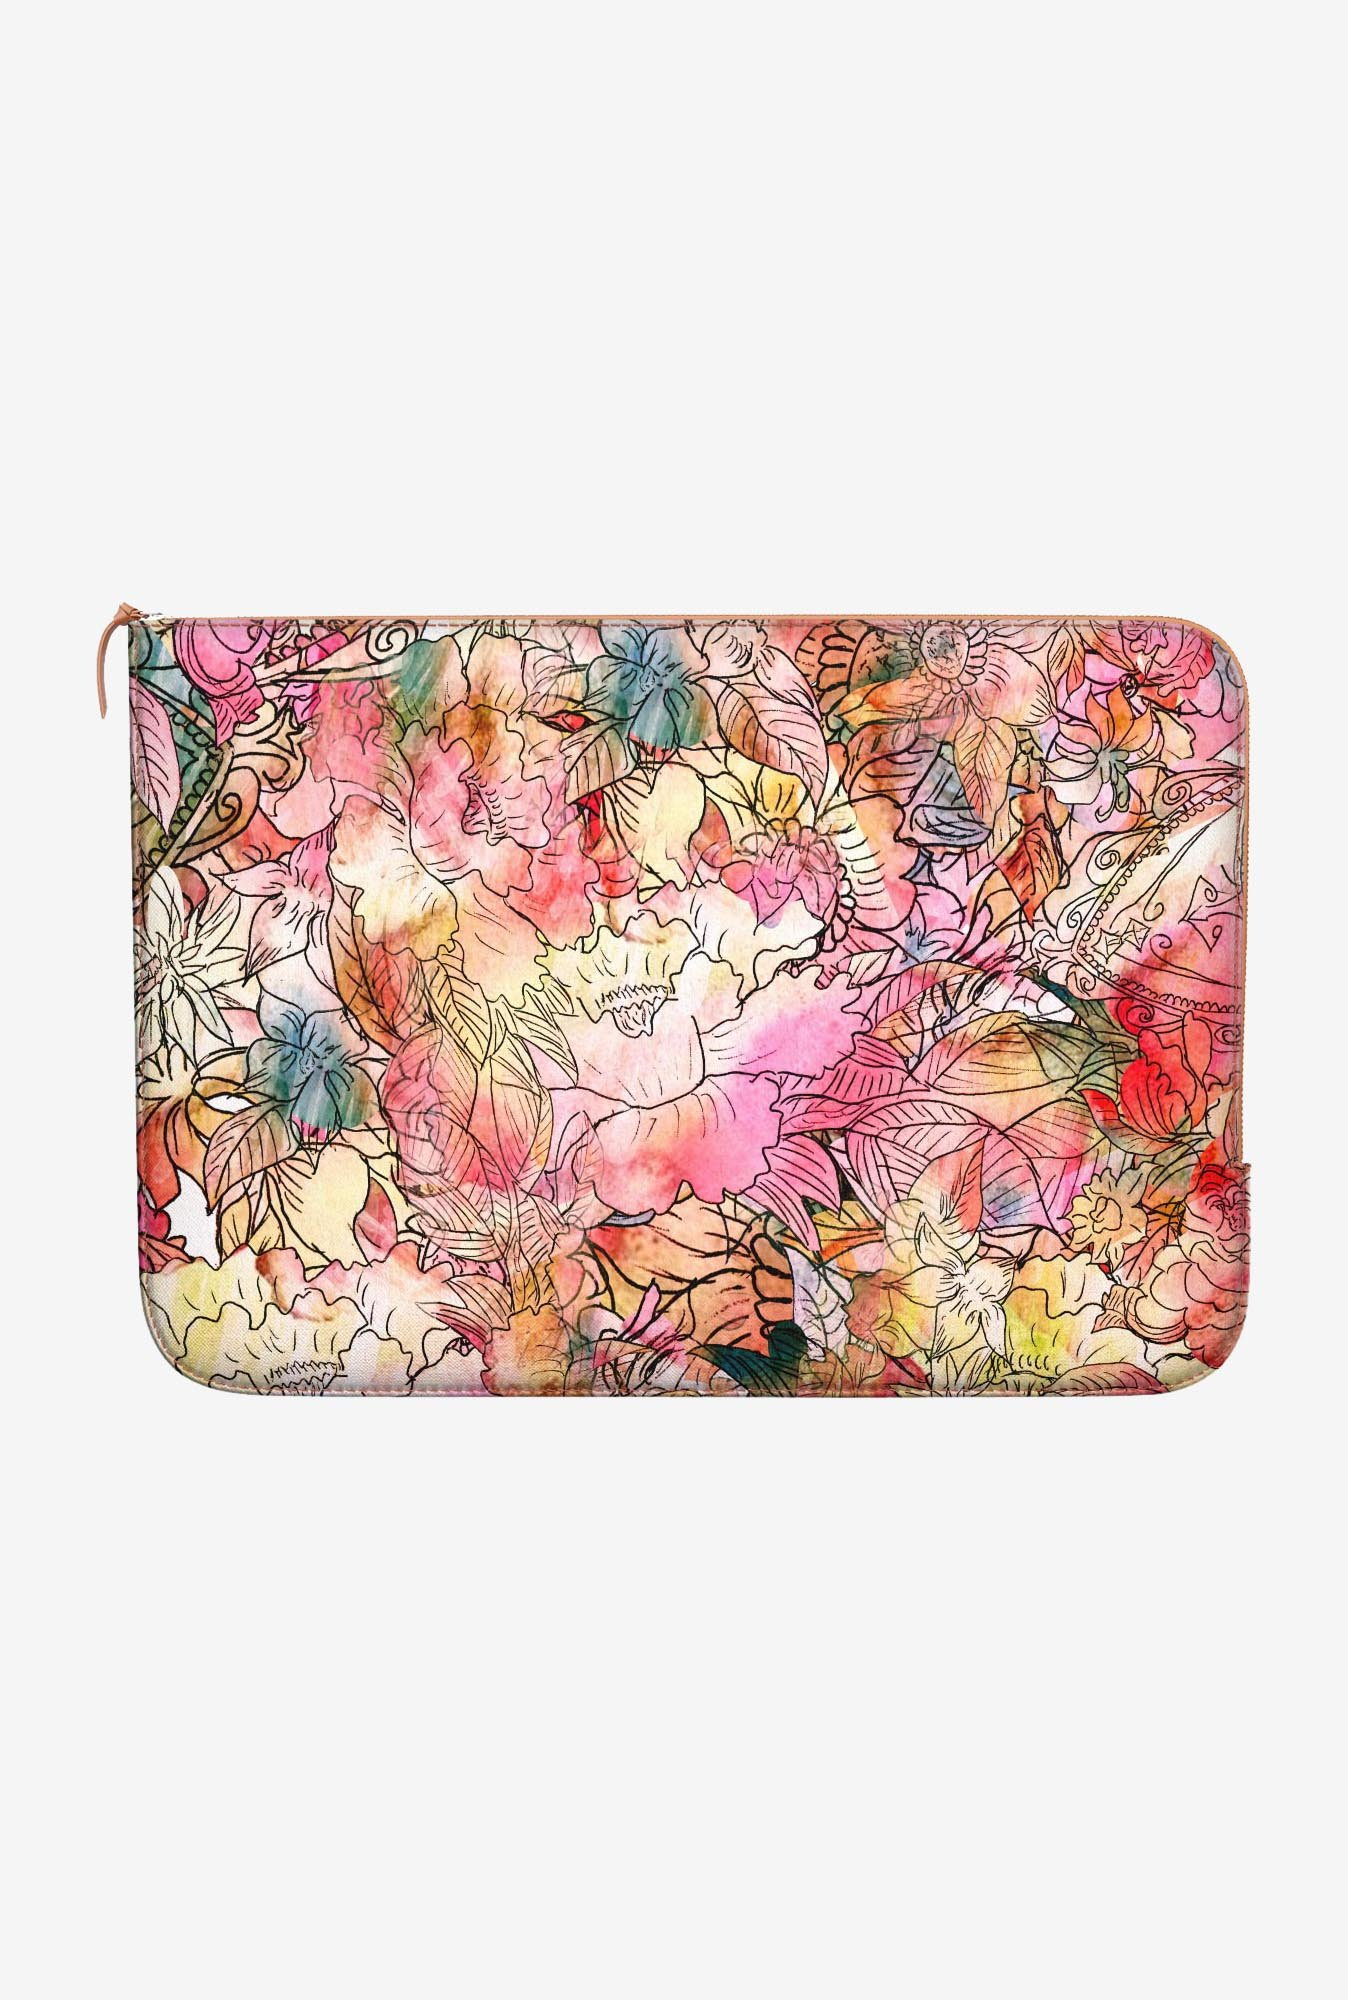 DailyObjects Colorful Floral MacBook Pro 15 Zippered Sleeve